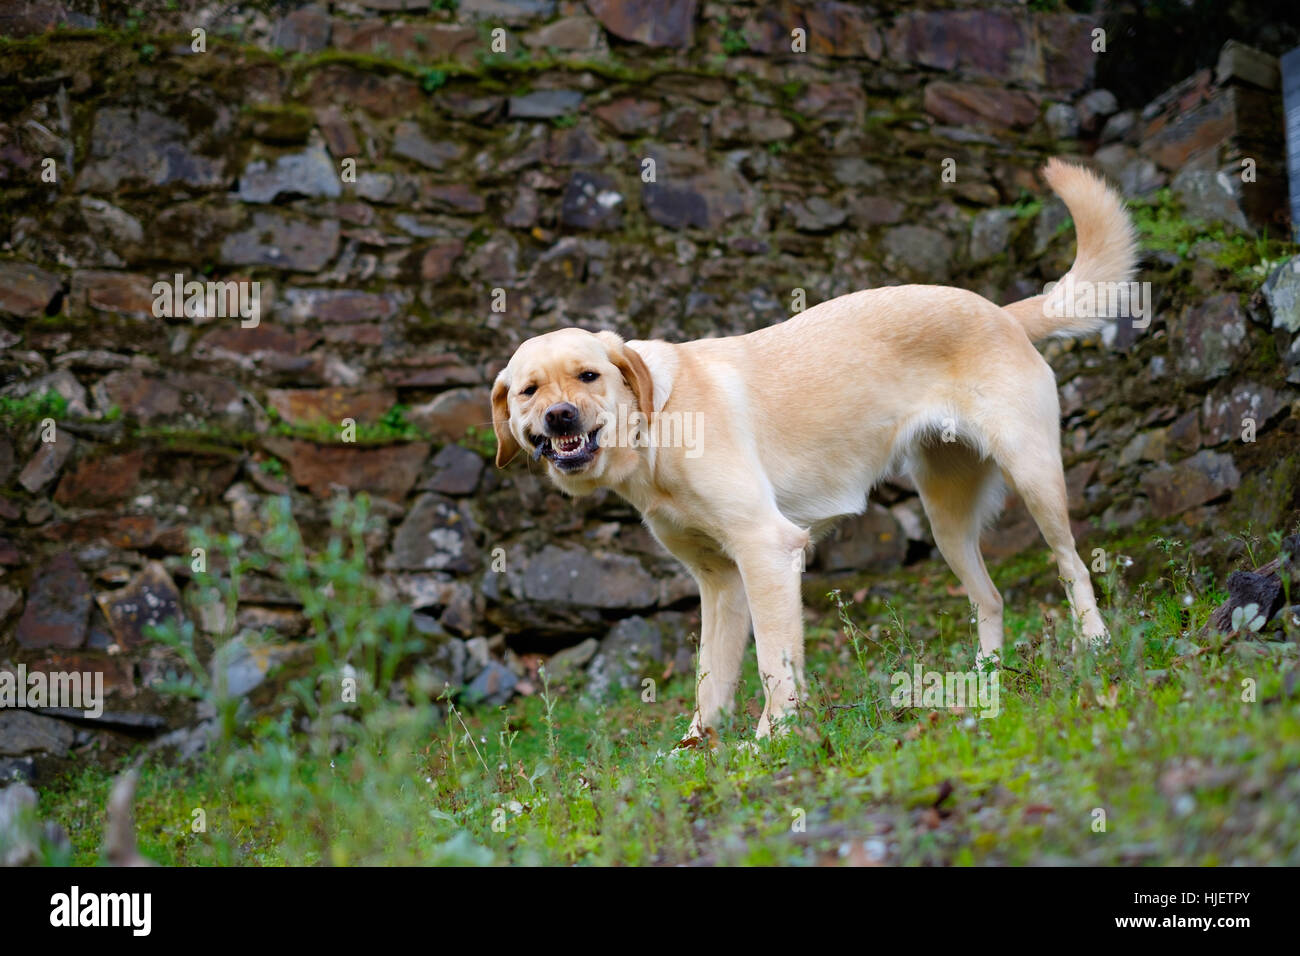 Yellow Labrador Golden Retriever mix dog aggressively showing its teeth - Stock Image